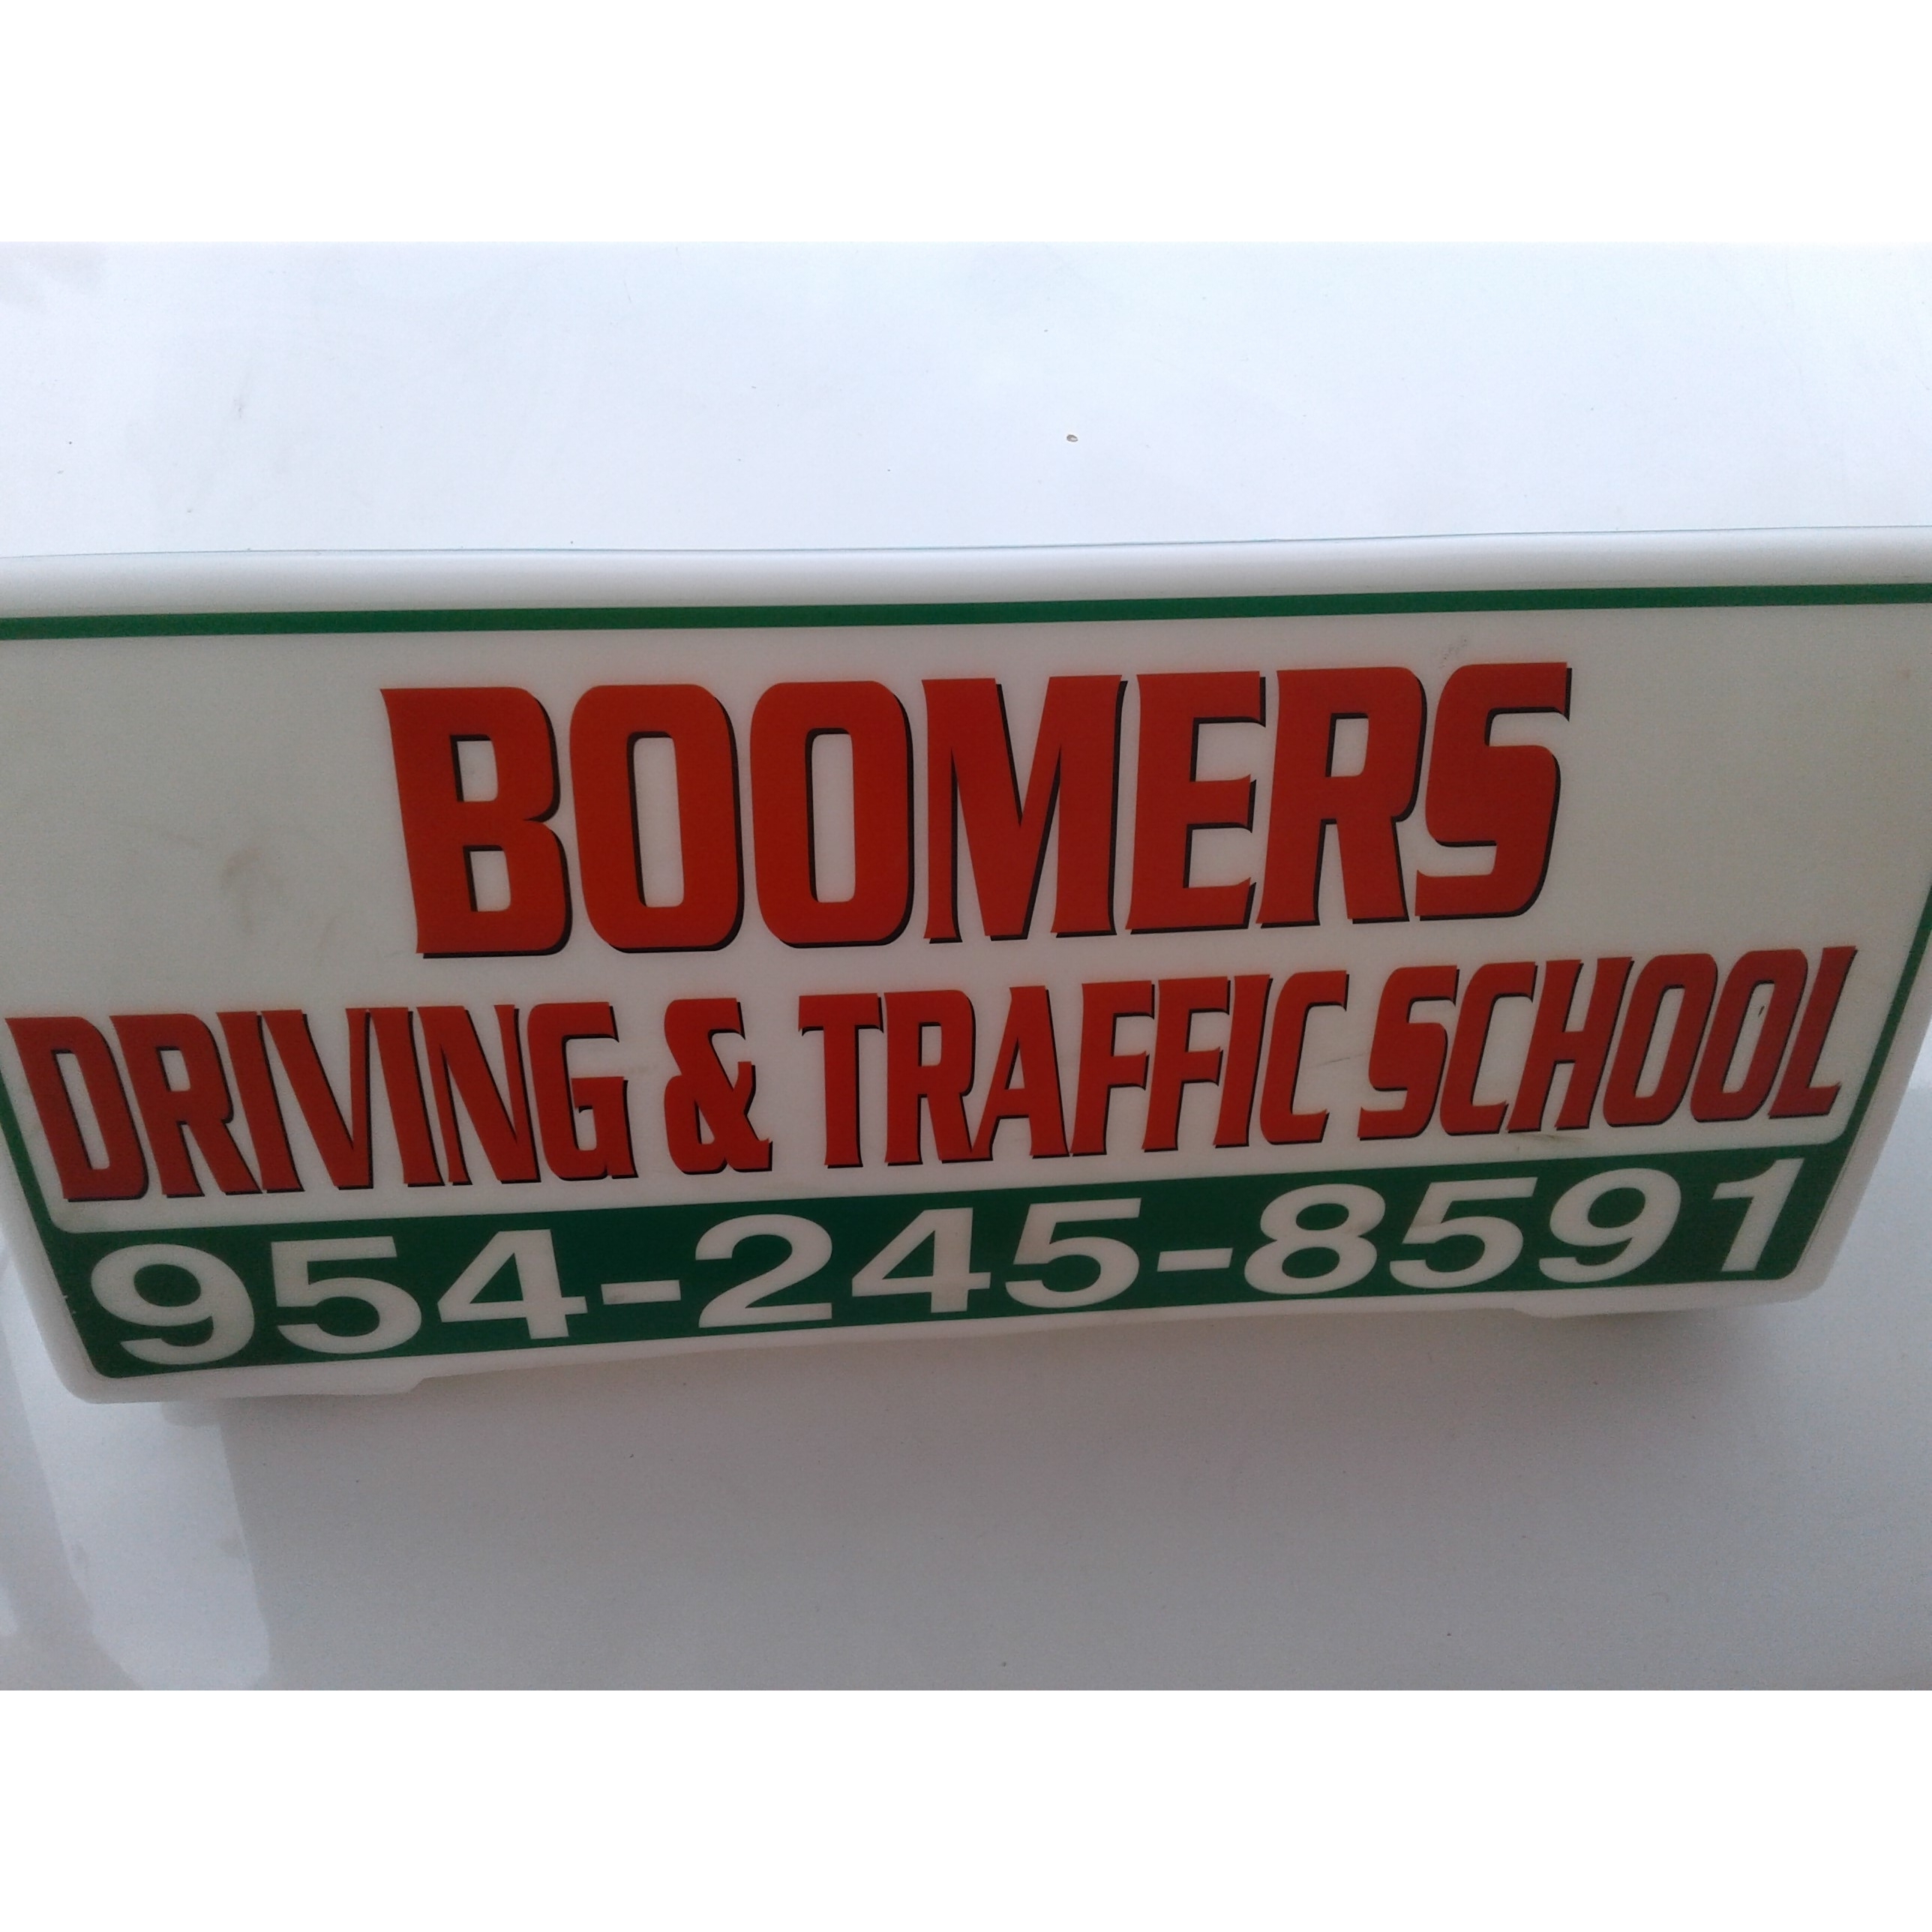 Boomers Driving and Traffic School